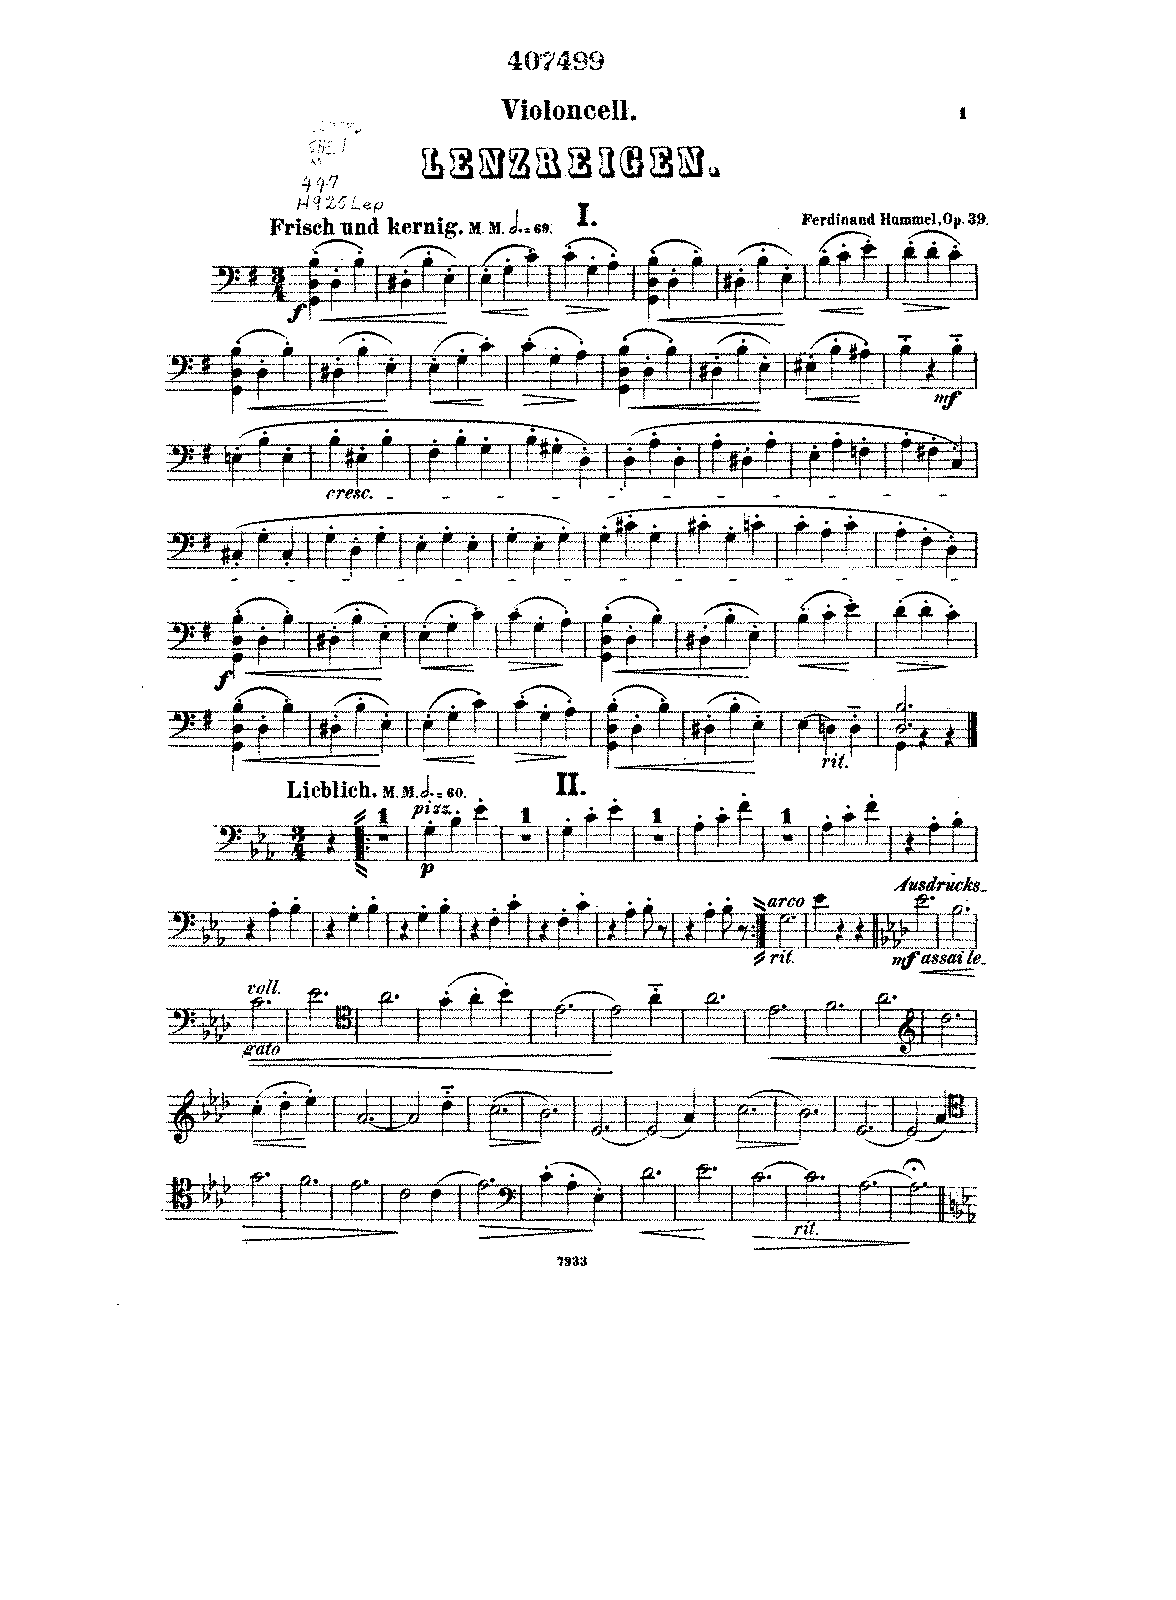 SIBLEY1802.7691.cb63-39087009063761cello.pdf